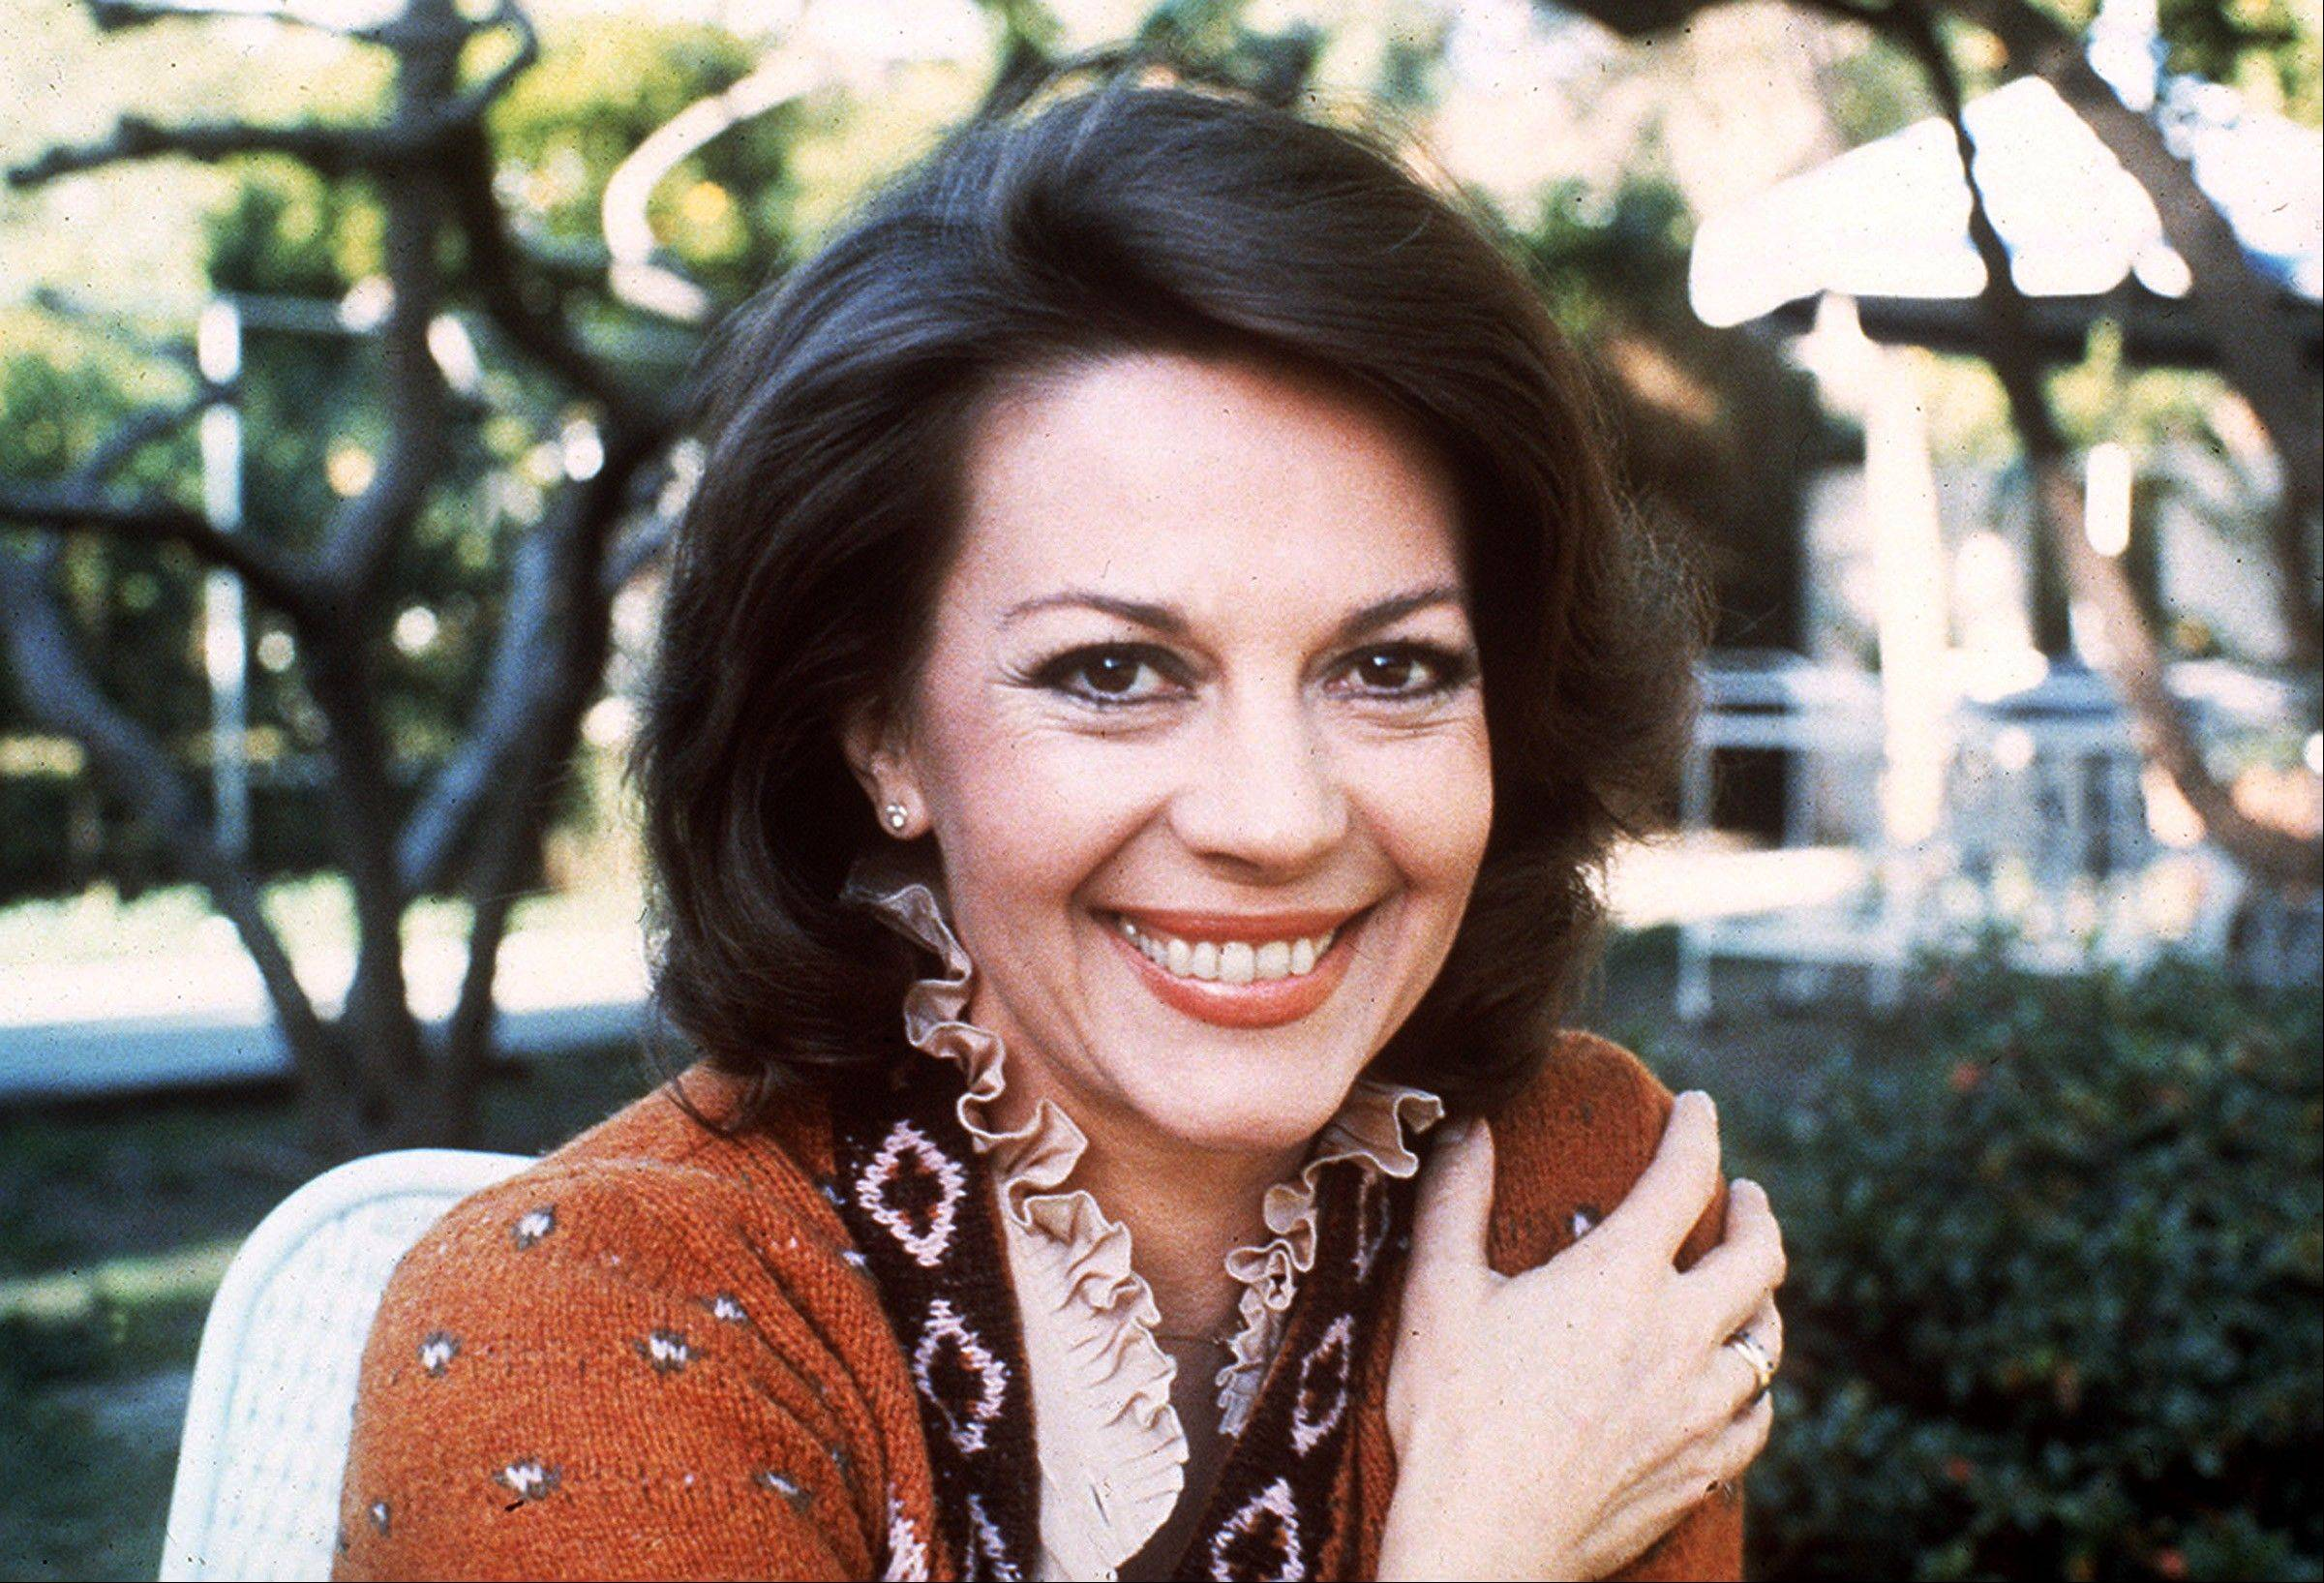 A new report Monday shows that coroner's officials amended Natalie Wood's death certificate based on unanswered questions about bruises on her upper body.